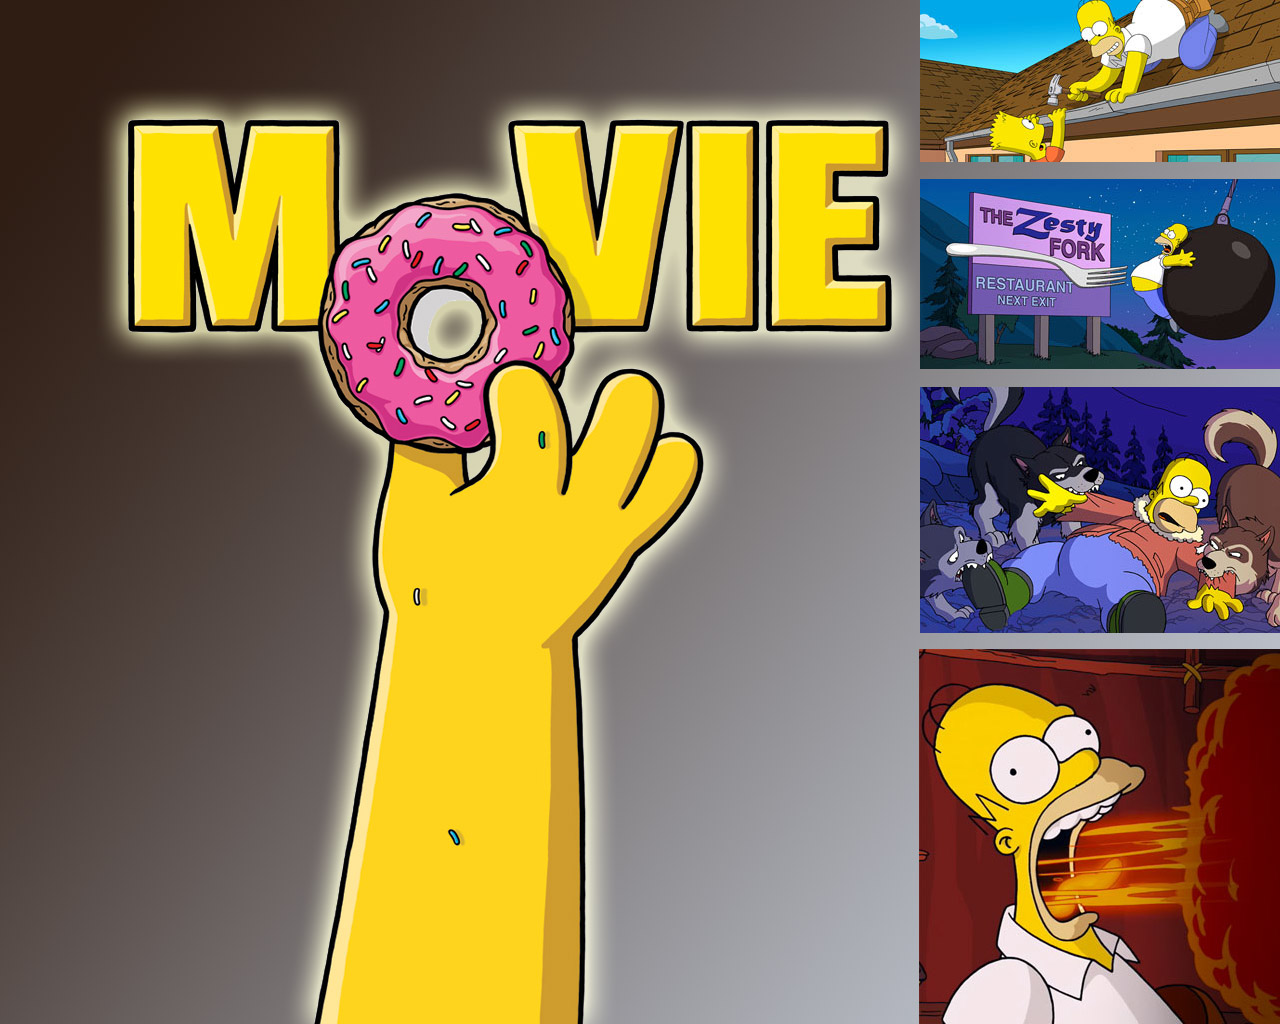 The Simpsons Iphone Wallpaper The Simpsons Movie Wallpaper Free Hd Backgrounds Images